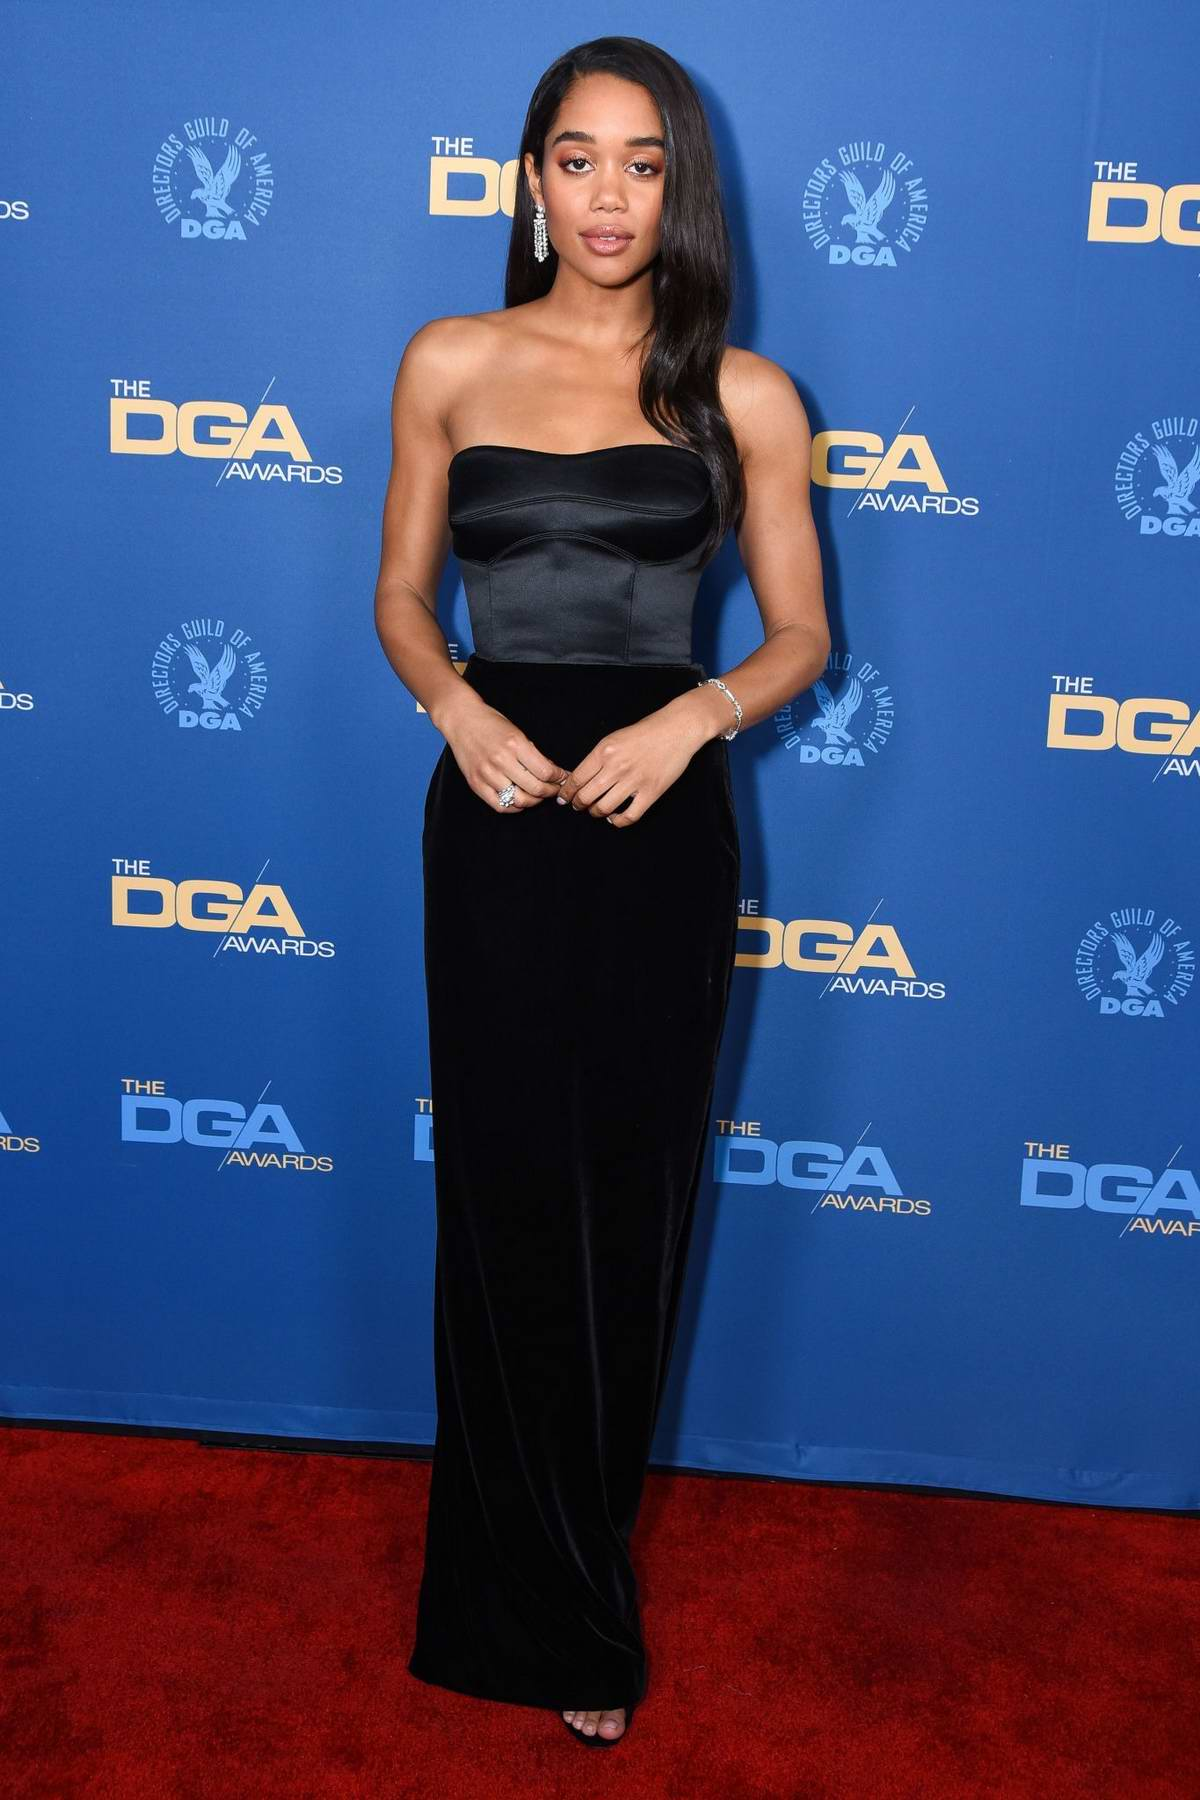 Laura Harrier attends the 71st Annual Directors Guild Of America Awards in Hollywood, California